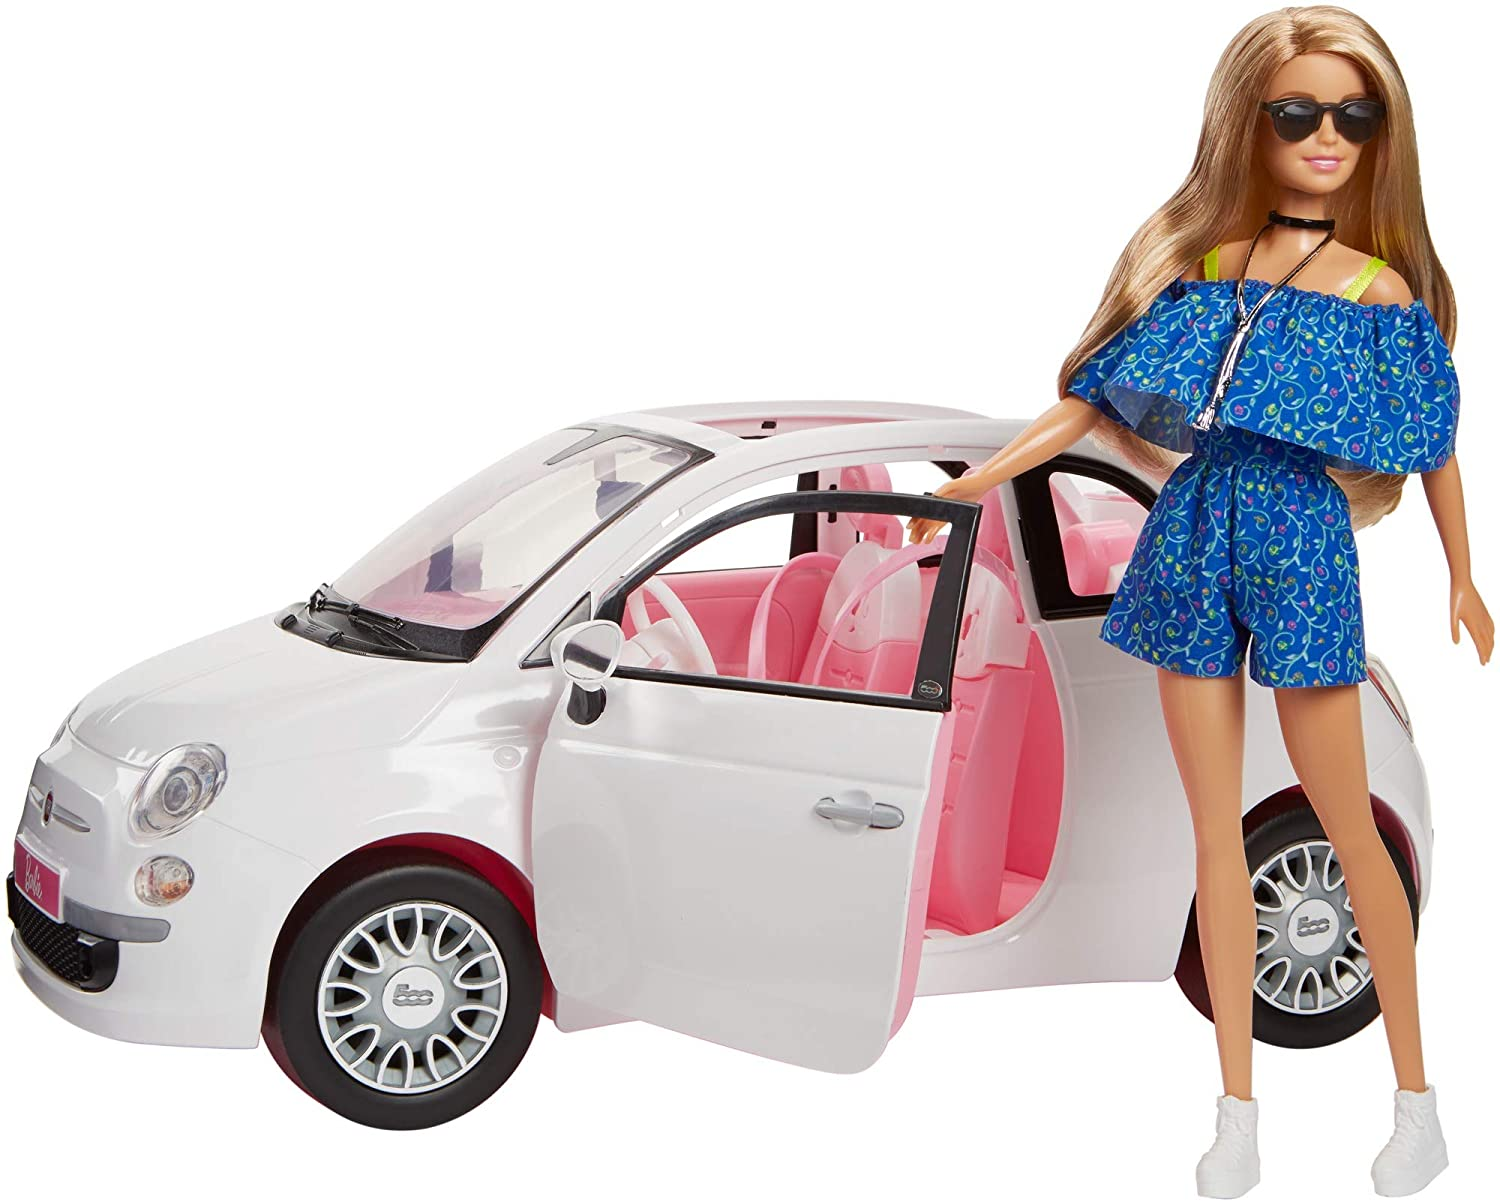 Treat your kids for Christmas to this Barbie Fiat car and doll while saving £30 from Argos